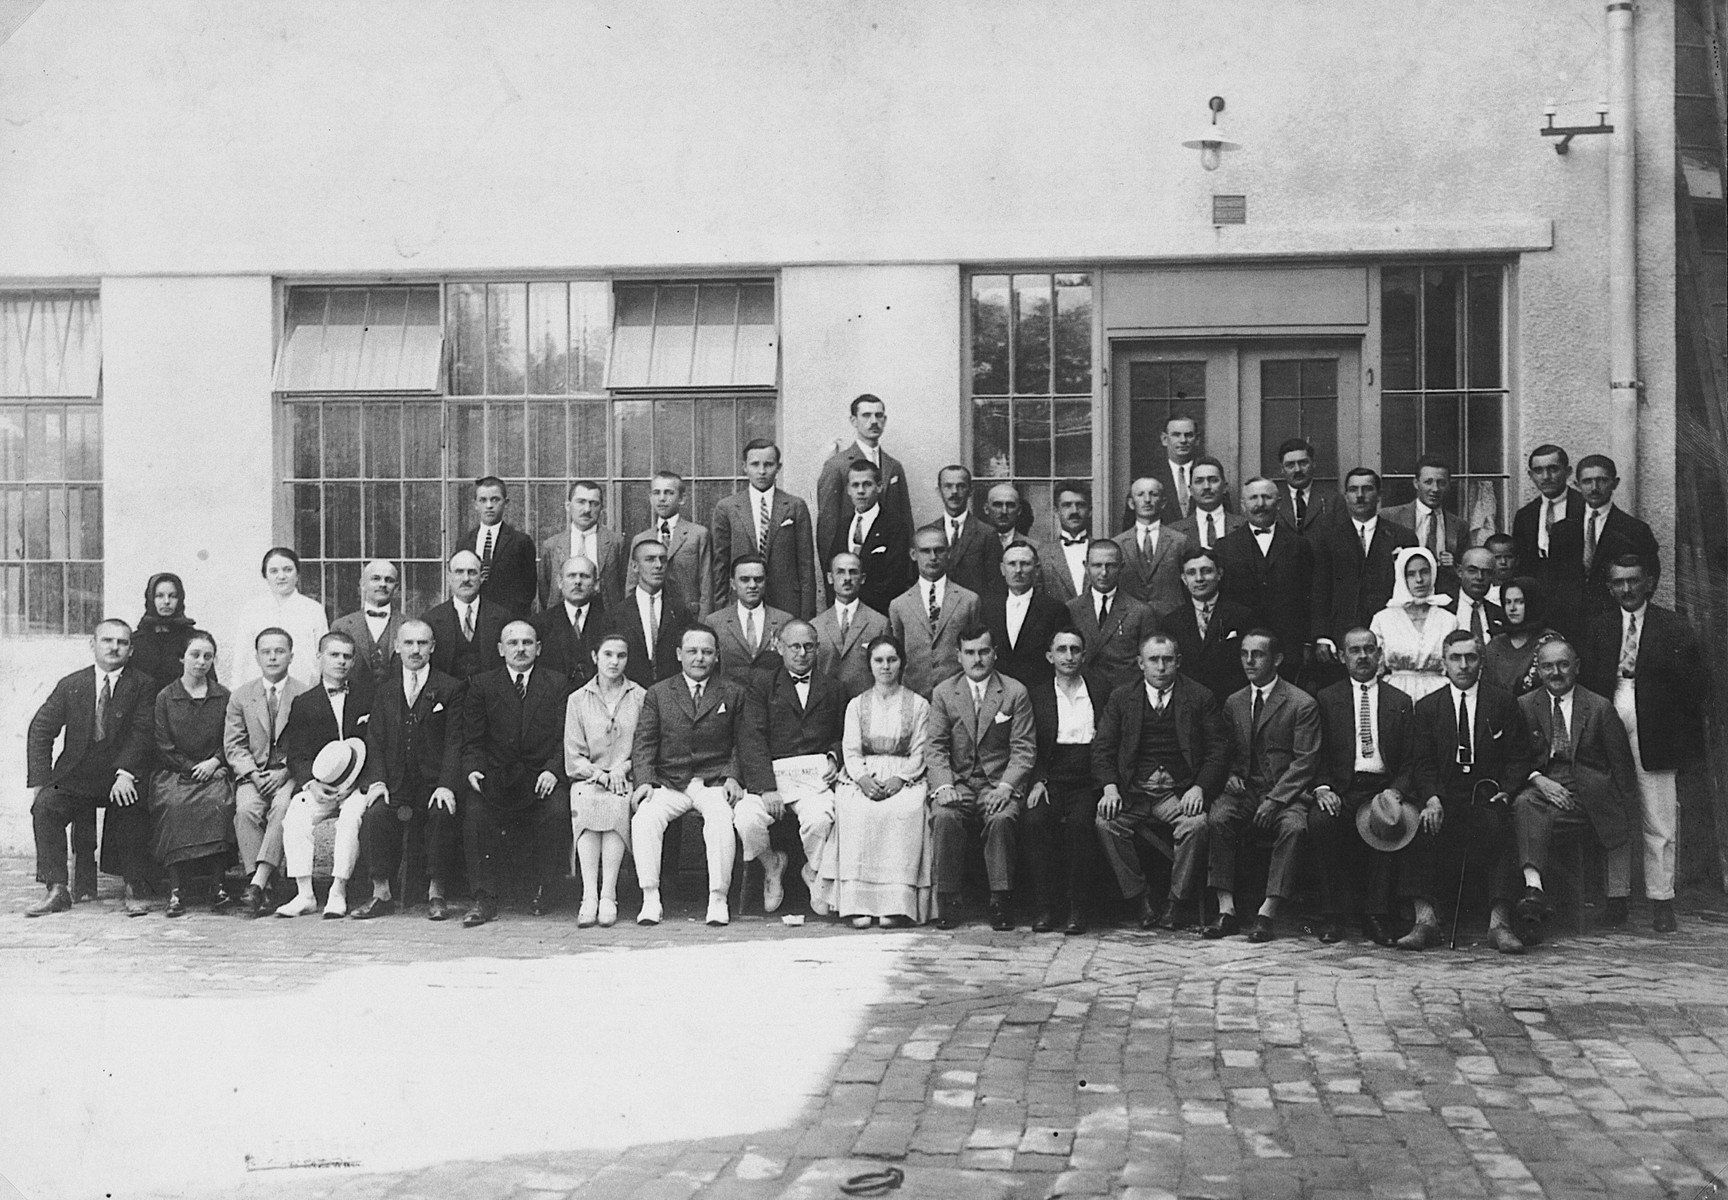 Lajos and Ferenc Fenyves pose with the staff of their printing plant.  Lajos and Ferenc Fenyves are seated in the center wearing white pants.